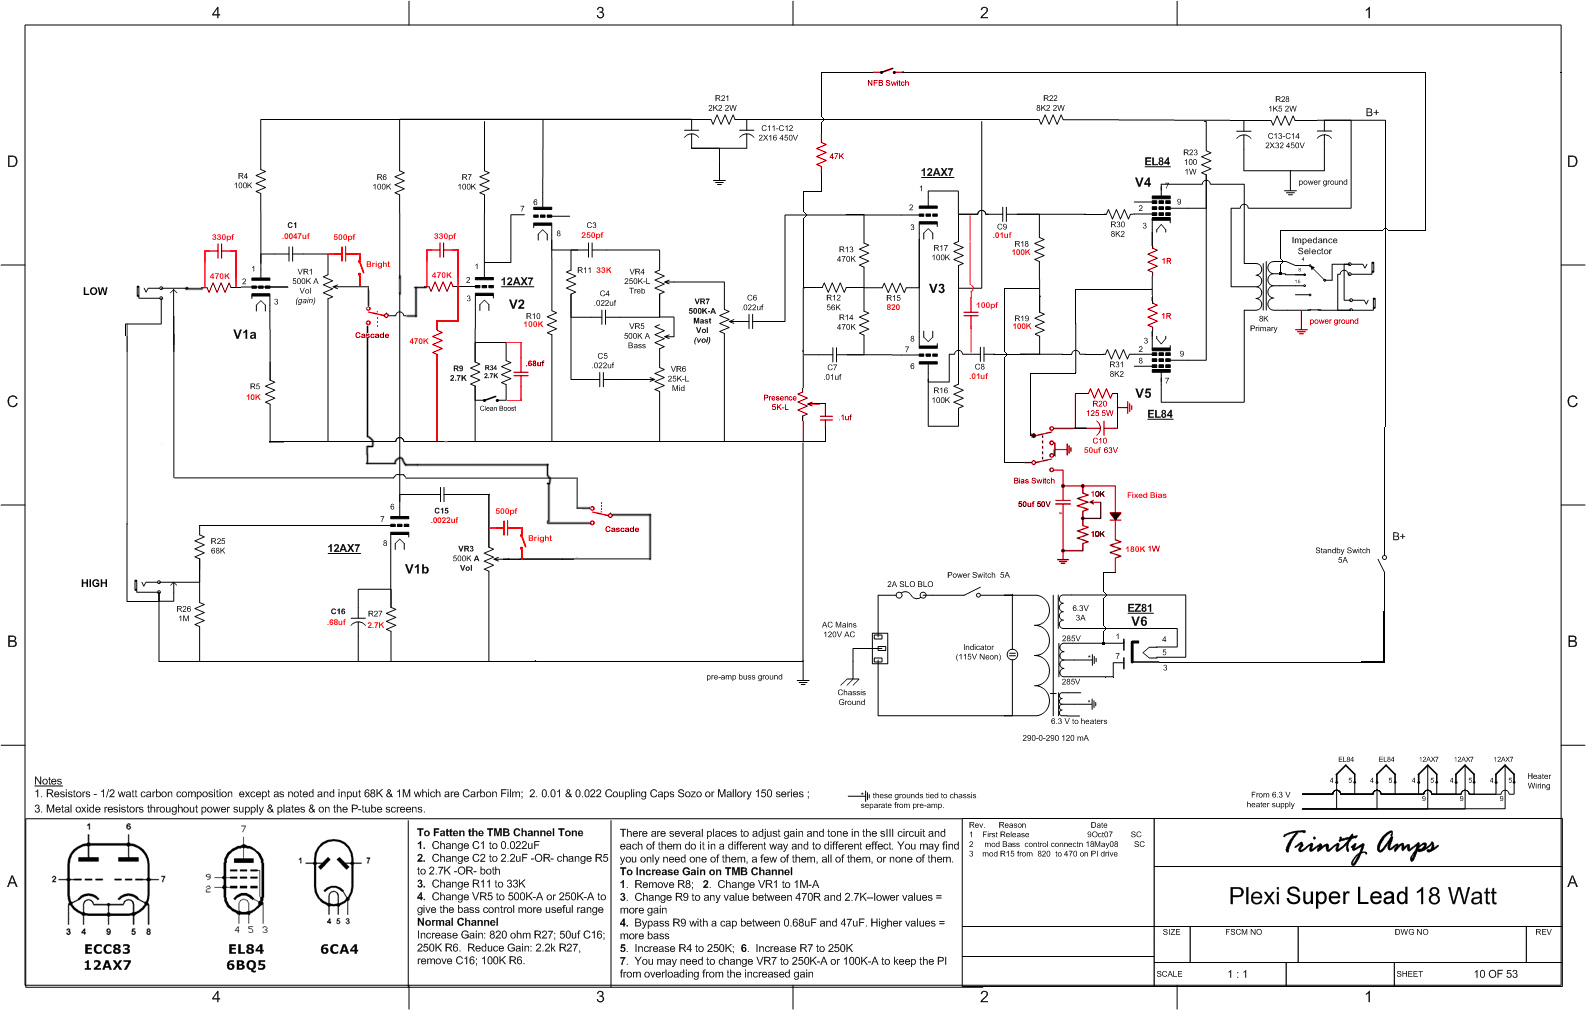 trinityamps.com • View topic - My DIY Head Cab on circuit diagram, fender schematic, tube map, zvex sho schematic, irig schematic, peavey schematic, jtm45 schematic, overdrive schematic, dsl schematic, 3pdt schematic, ac30 schematic, 1987x schematic, jcm 900 schematic, transformer schematic, marshall schematic, amp schematic, bassman schematic, guitar schematic, functional flow block diagram, 5e3 schematic, bass tube preamp schematic, one-line diagram, slo-100 schematic, piping and instrumentation diagram, soldano schematic, technical drawing, block diagram,